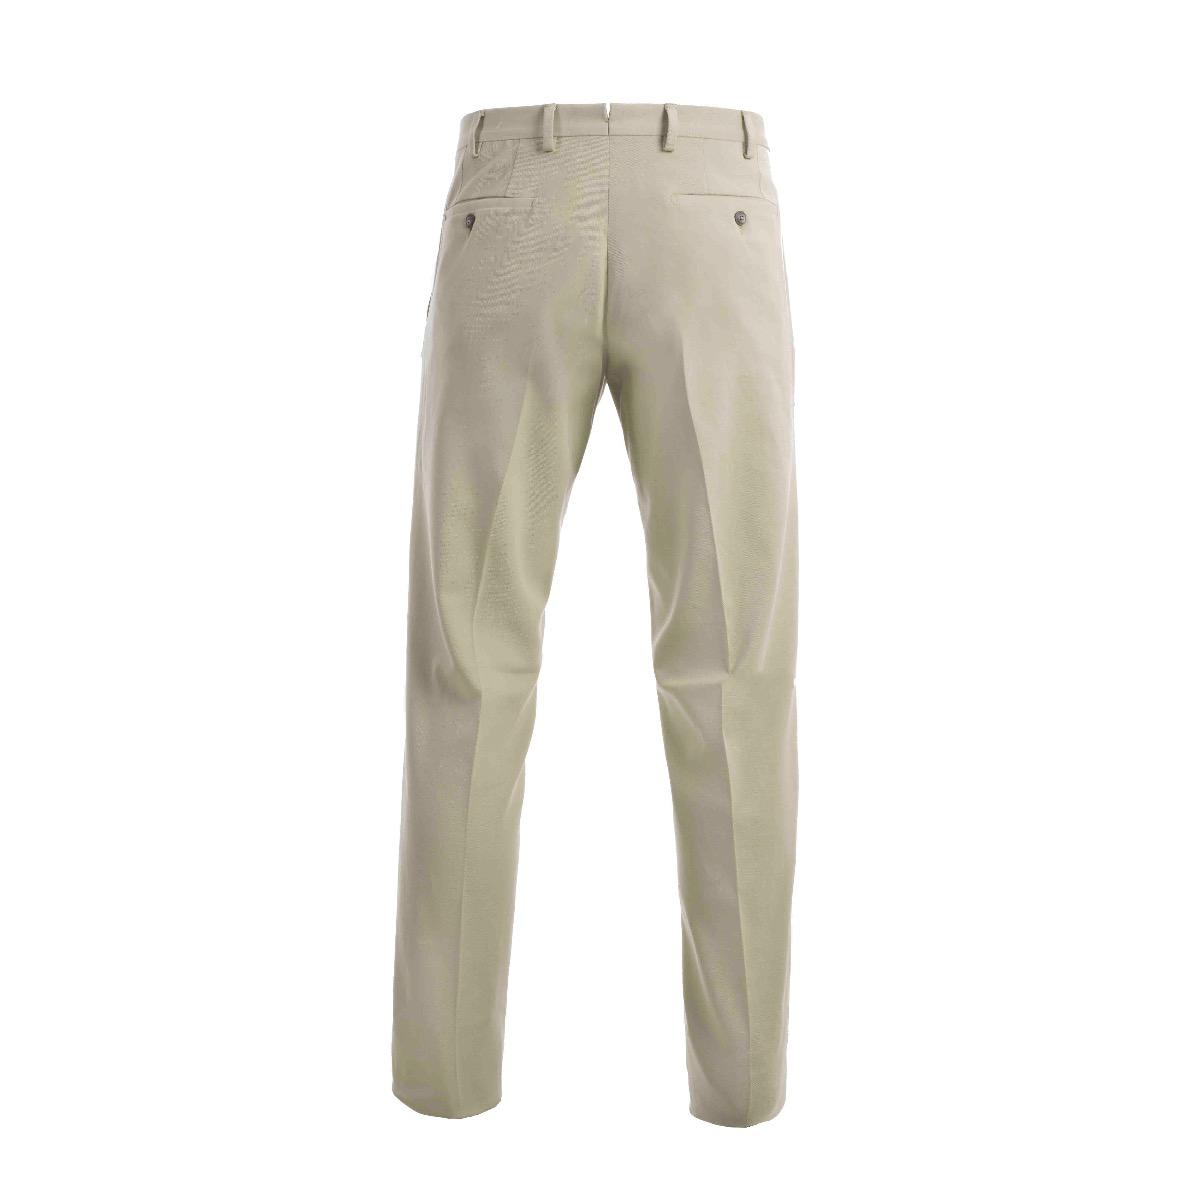 Sale Pay With Paypal Green Casual Fustian Cotton Trousers Rubinacci Outlet Big Discount Free Shipping How Much jCSBRtD8